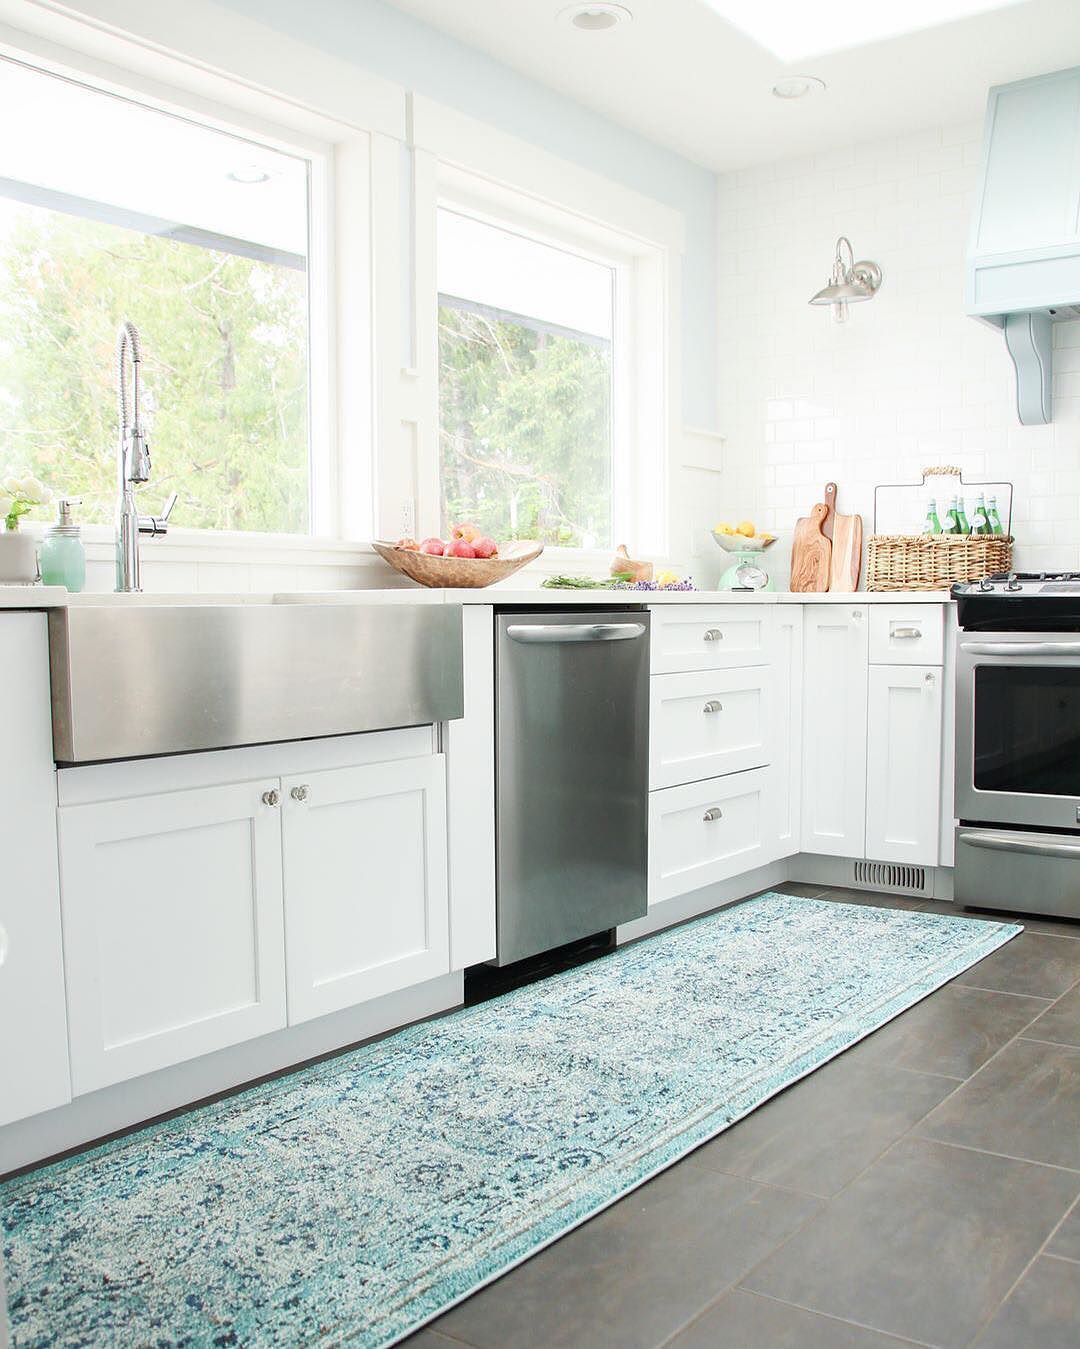 Kitchen sink window decor  try adding a colorful runner in your kitchen for an added element of